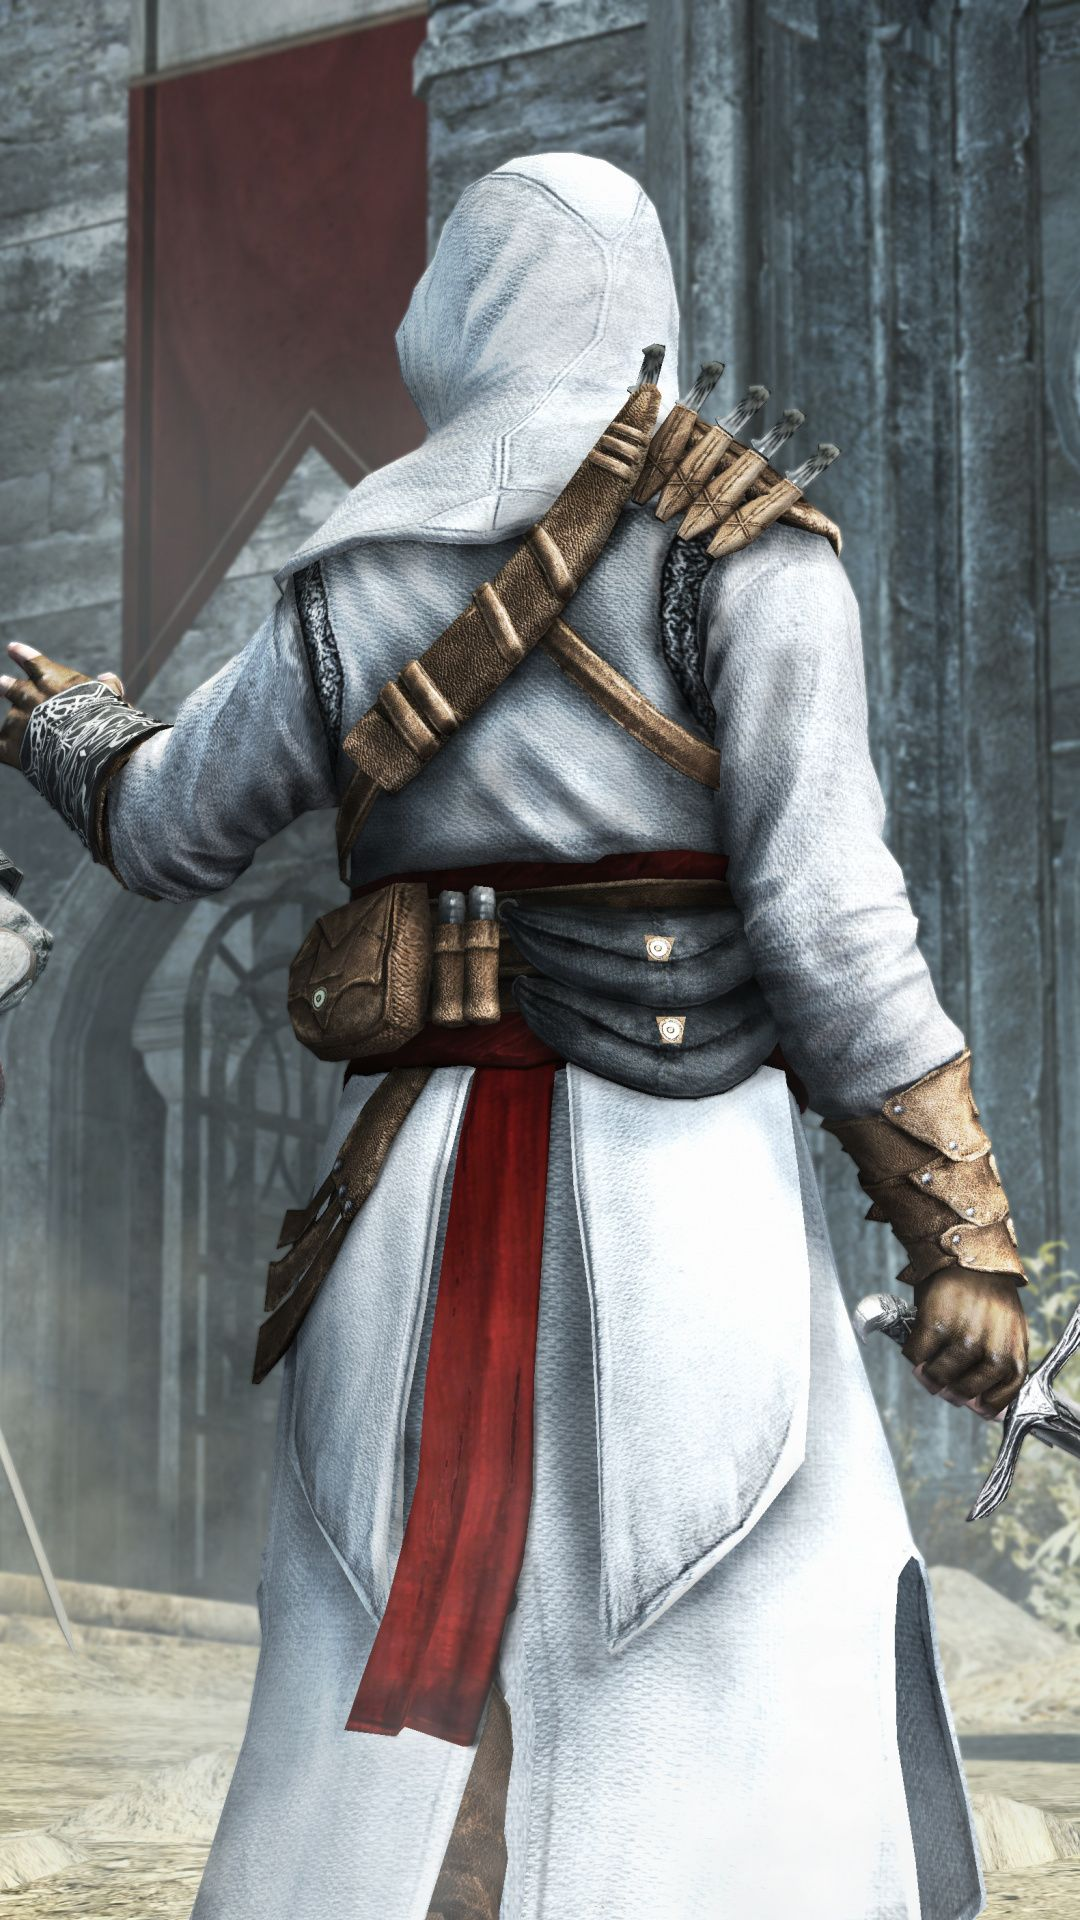 Wallpapers middle ages, knight, ubisoft, weapon, assassins